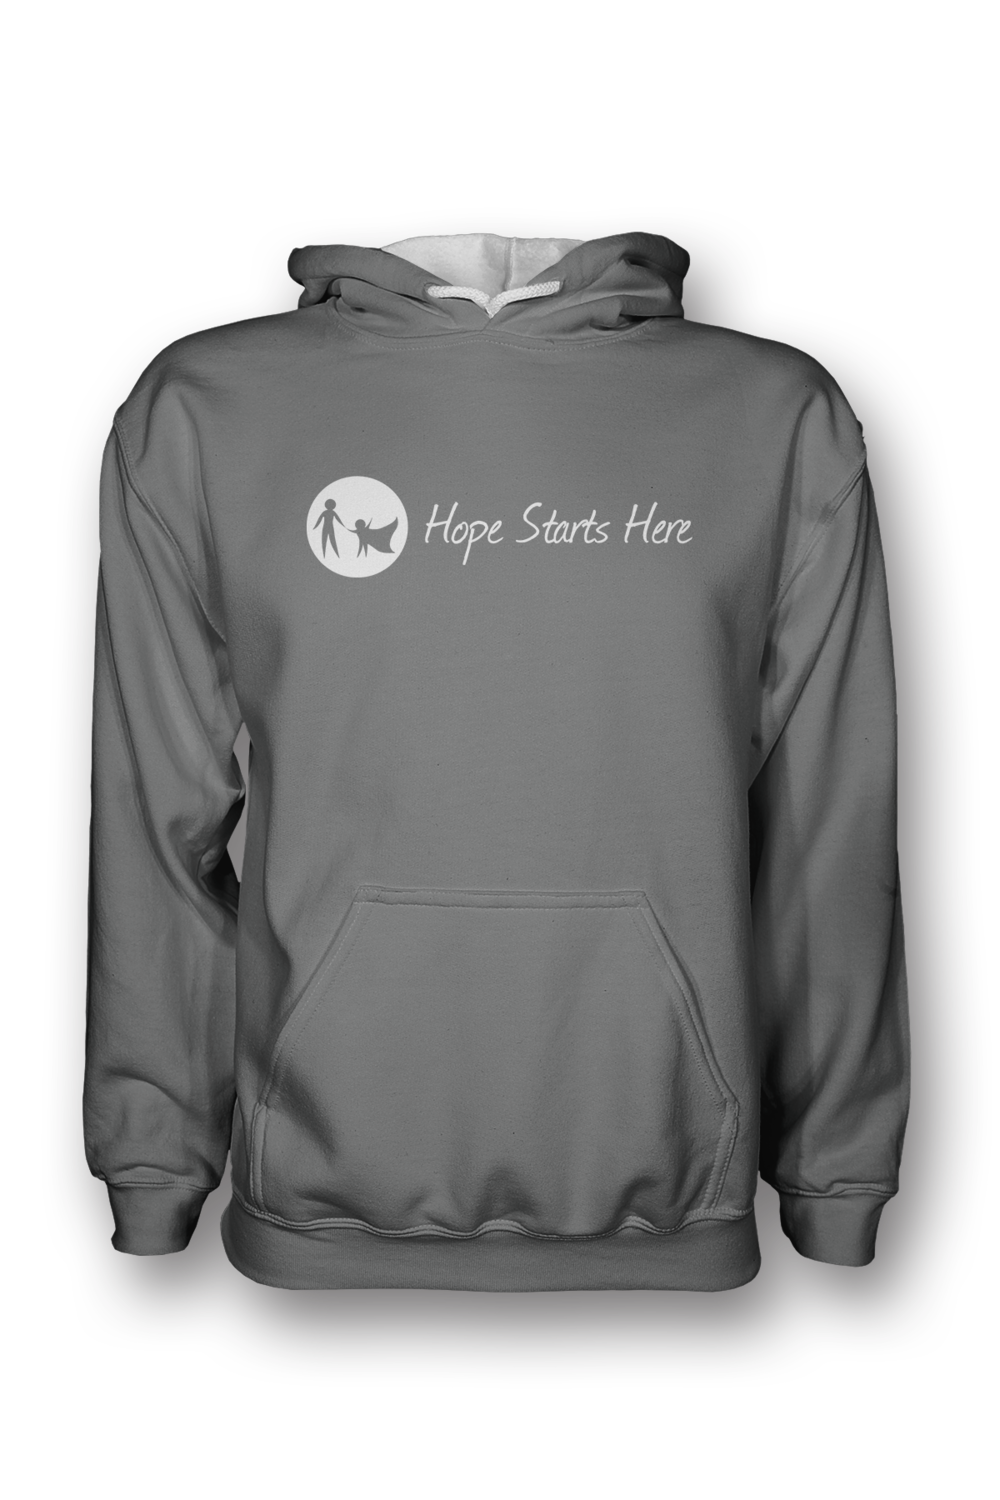 Pullover_Hoodie_FRONT_01.png